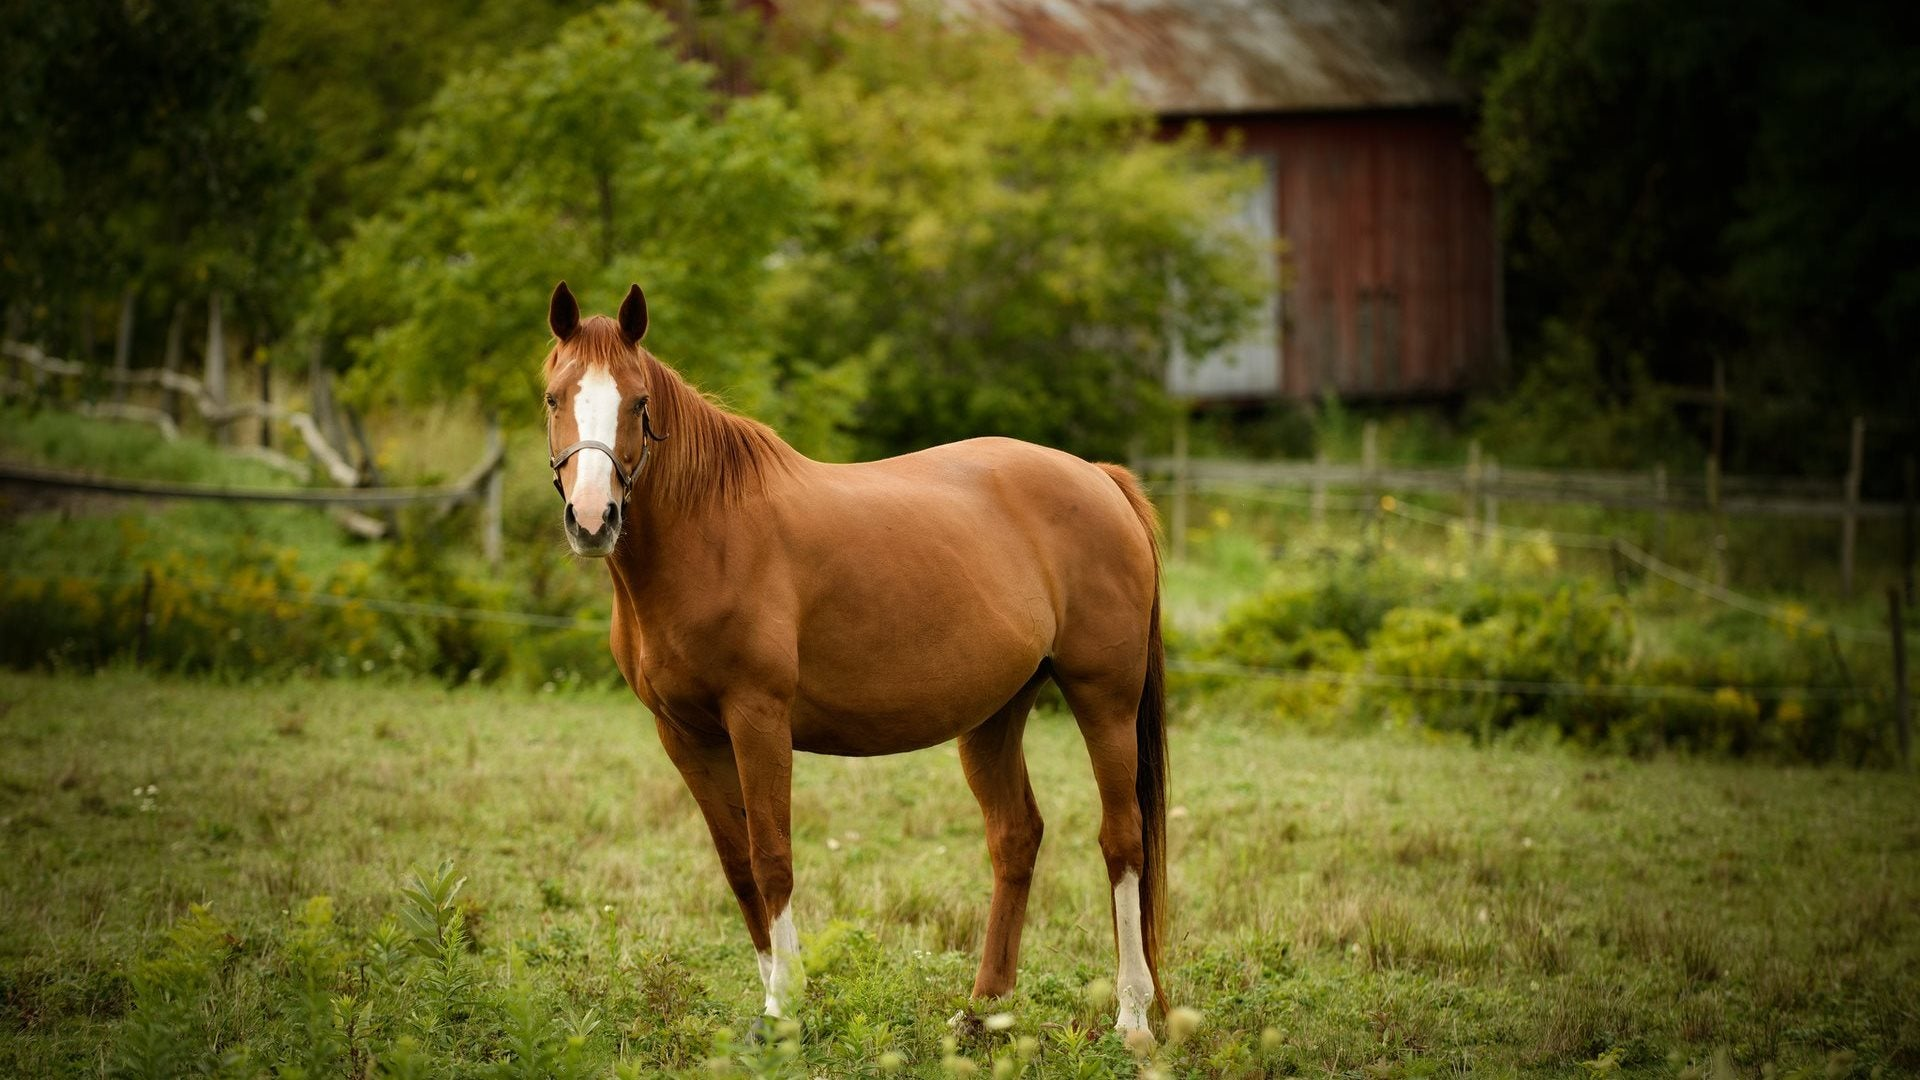 Horse standing in green pasture